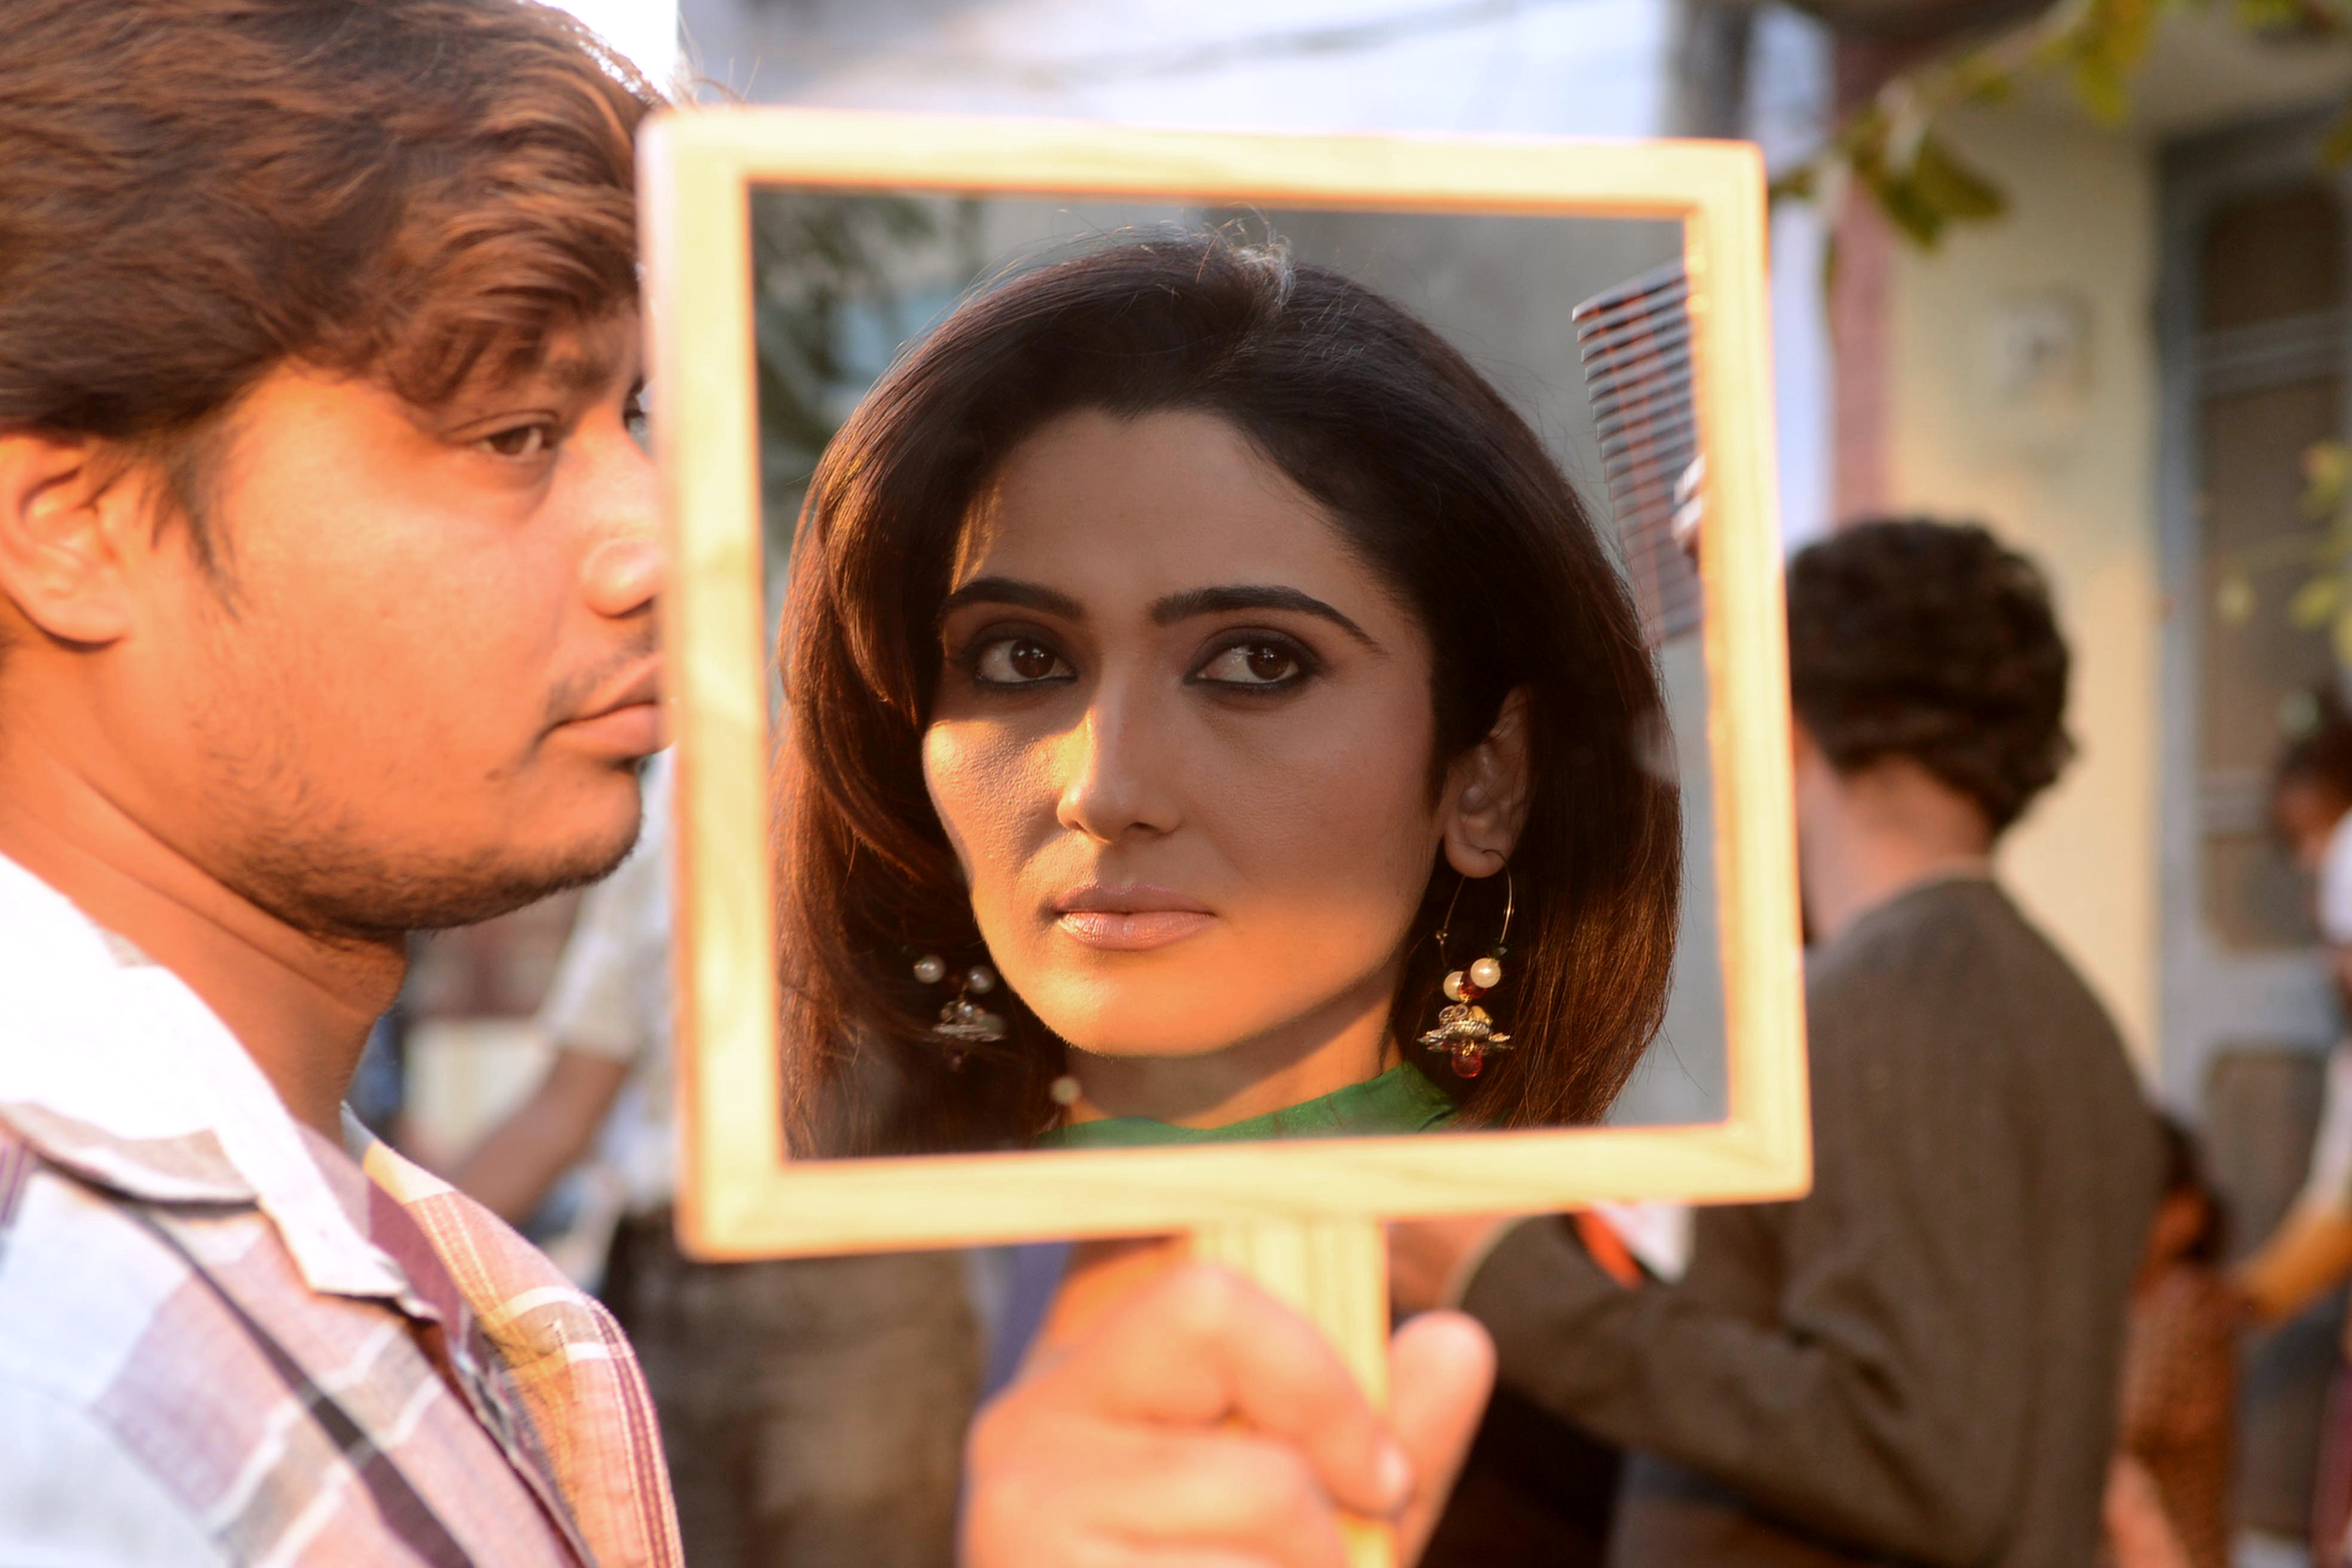 Actress Gauri Singh is reflected in a mirror as she adjusts her makeup during filming on the set of the Punjabi film 'Bolo Tara Rara' in Amritsar on November 16, 2012.